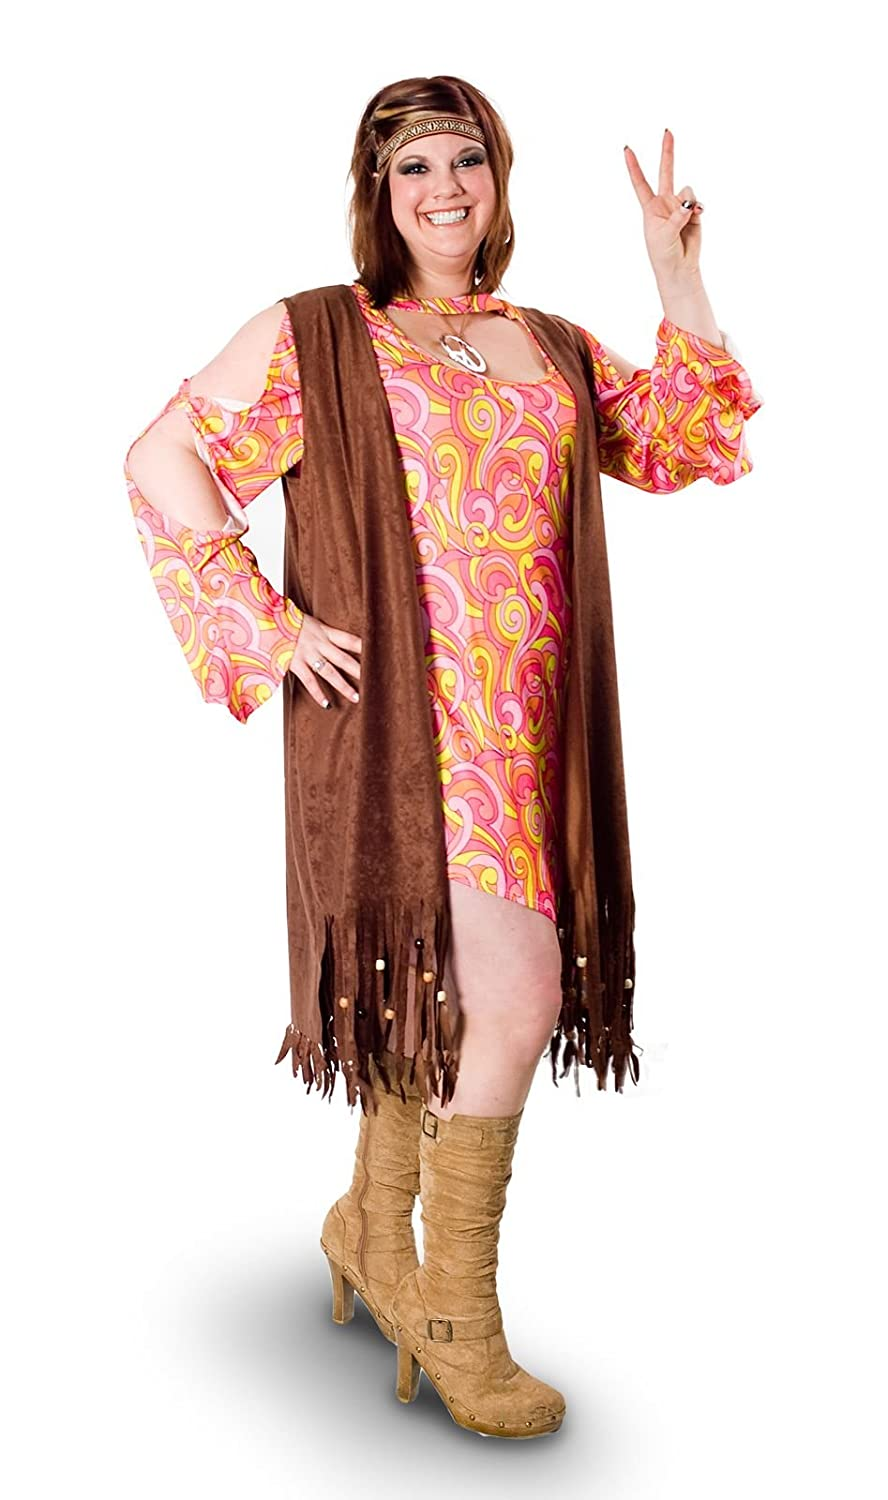 Hippie Dress | Long, Boho, Vintage, 70s Sunnywood Womens Plus-Size Lava Diva Funky Swirl Hippie Costume $42.58 AT vintagedancer.com